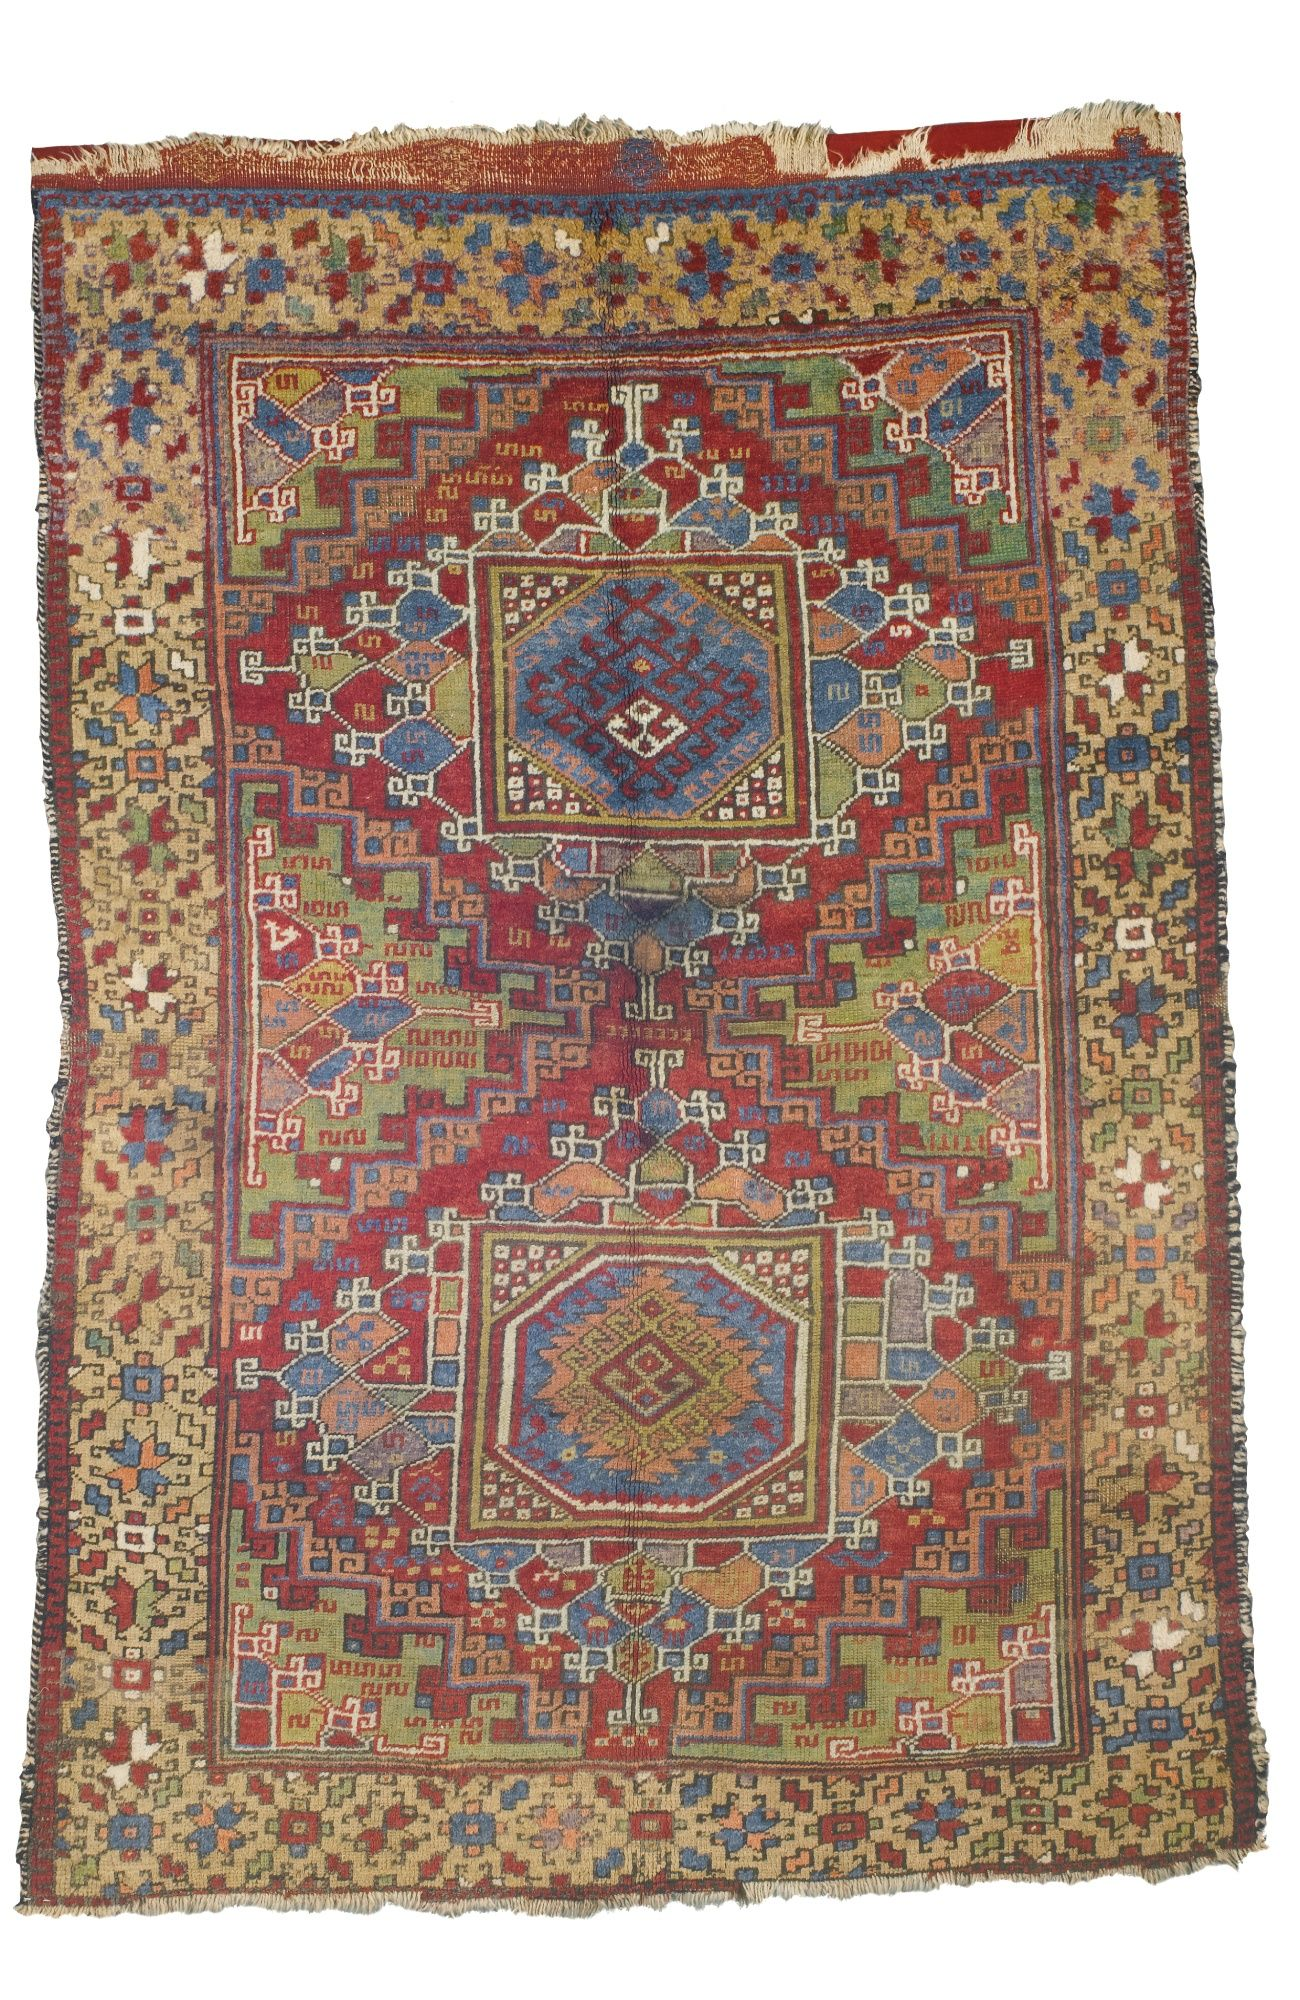 Teppich Geknüpft Modern Bergama Ghirlandaio Rug West Anatolia Approximately 242 By